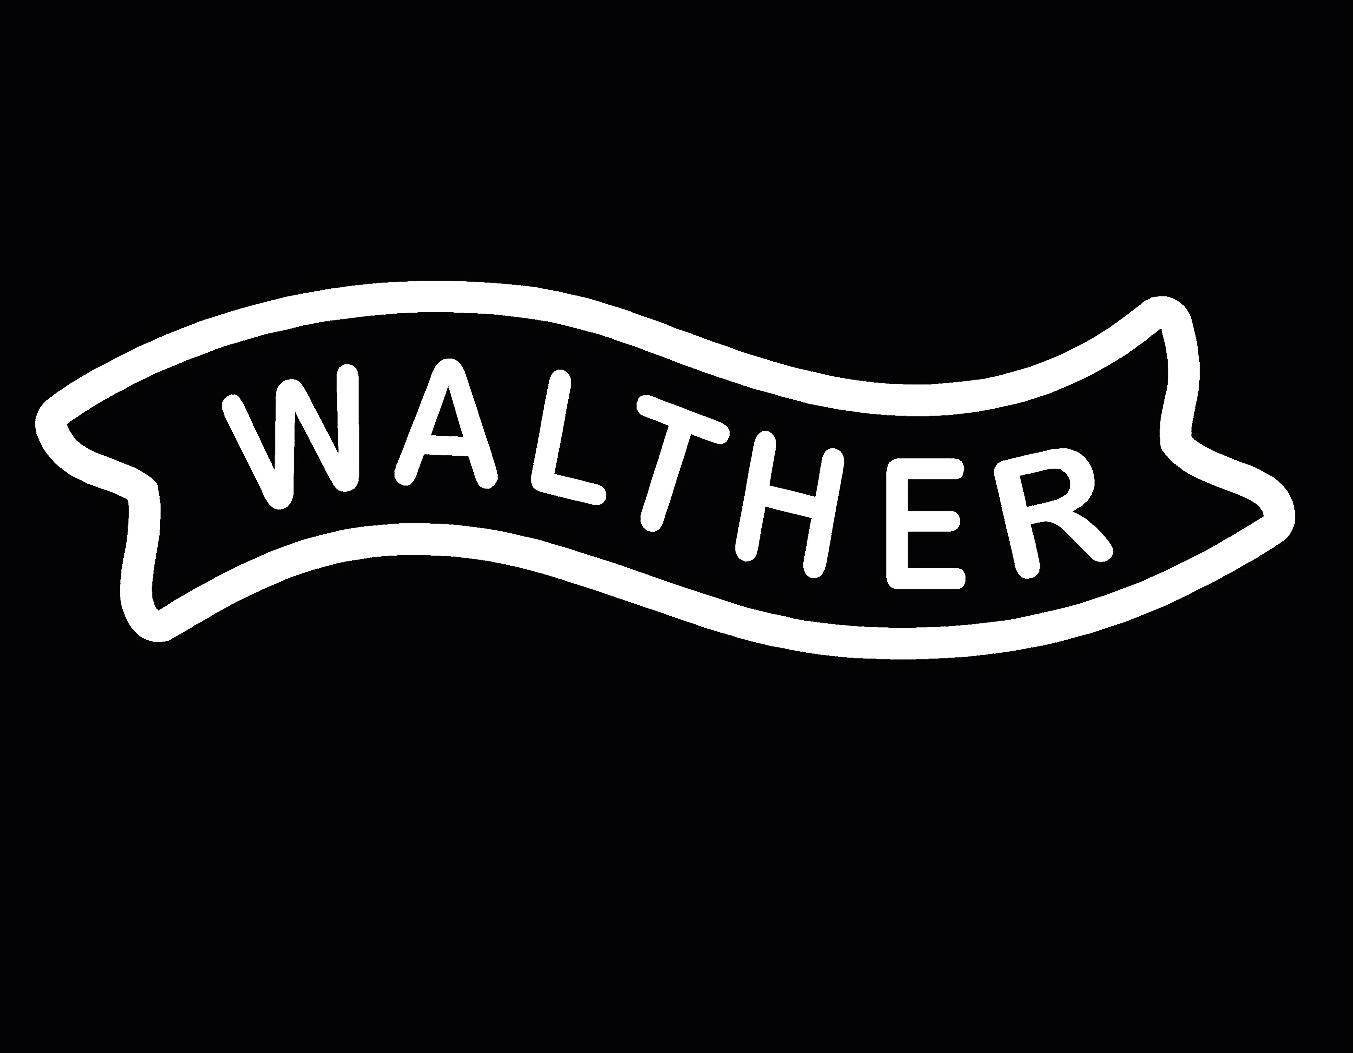 Wholesale Walther Firearms Logo Vinyl Decal Sticker Car